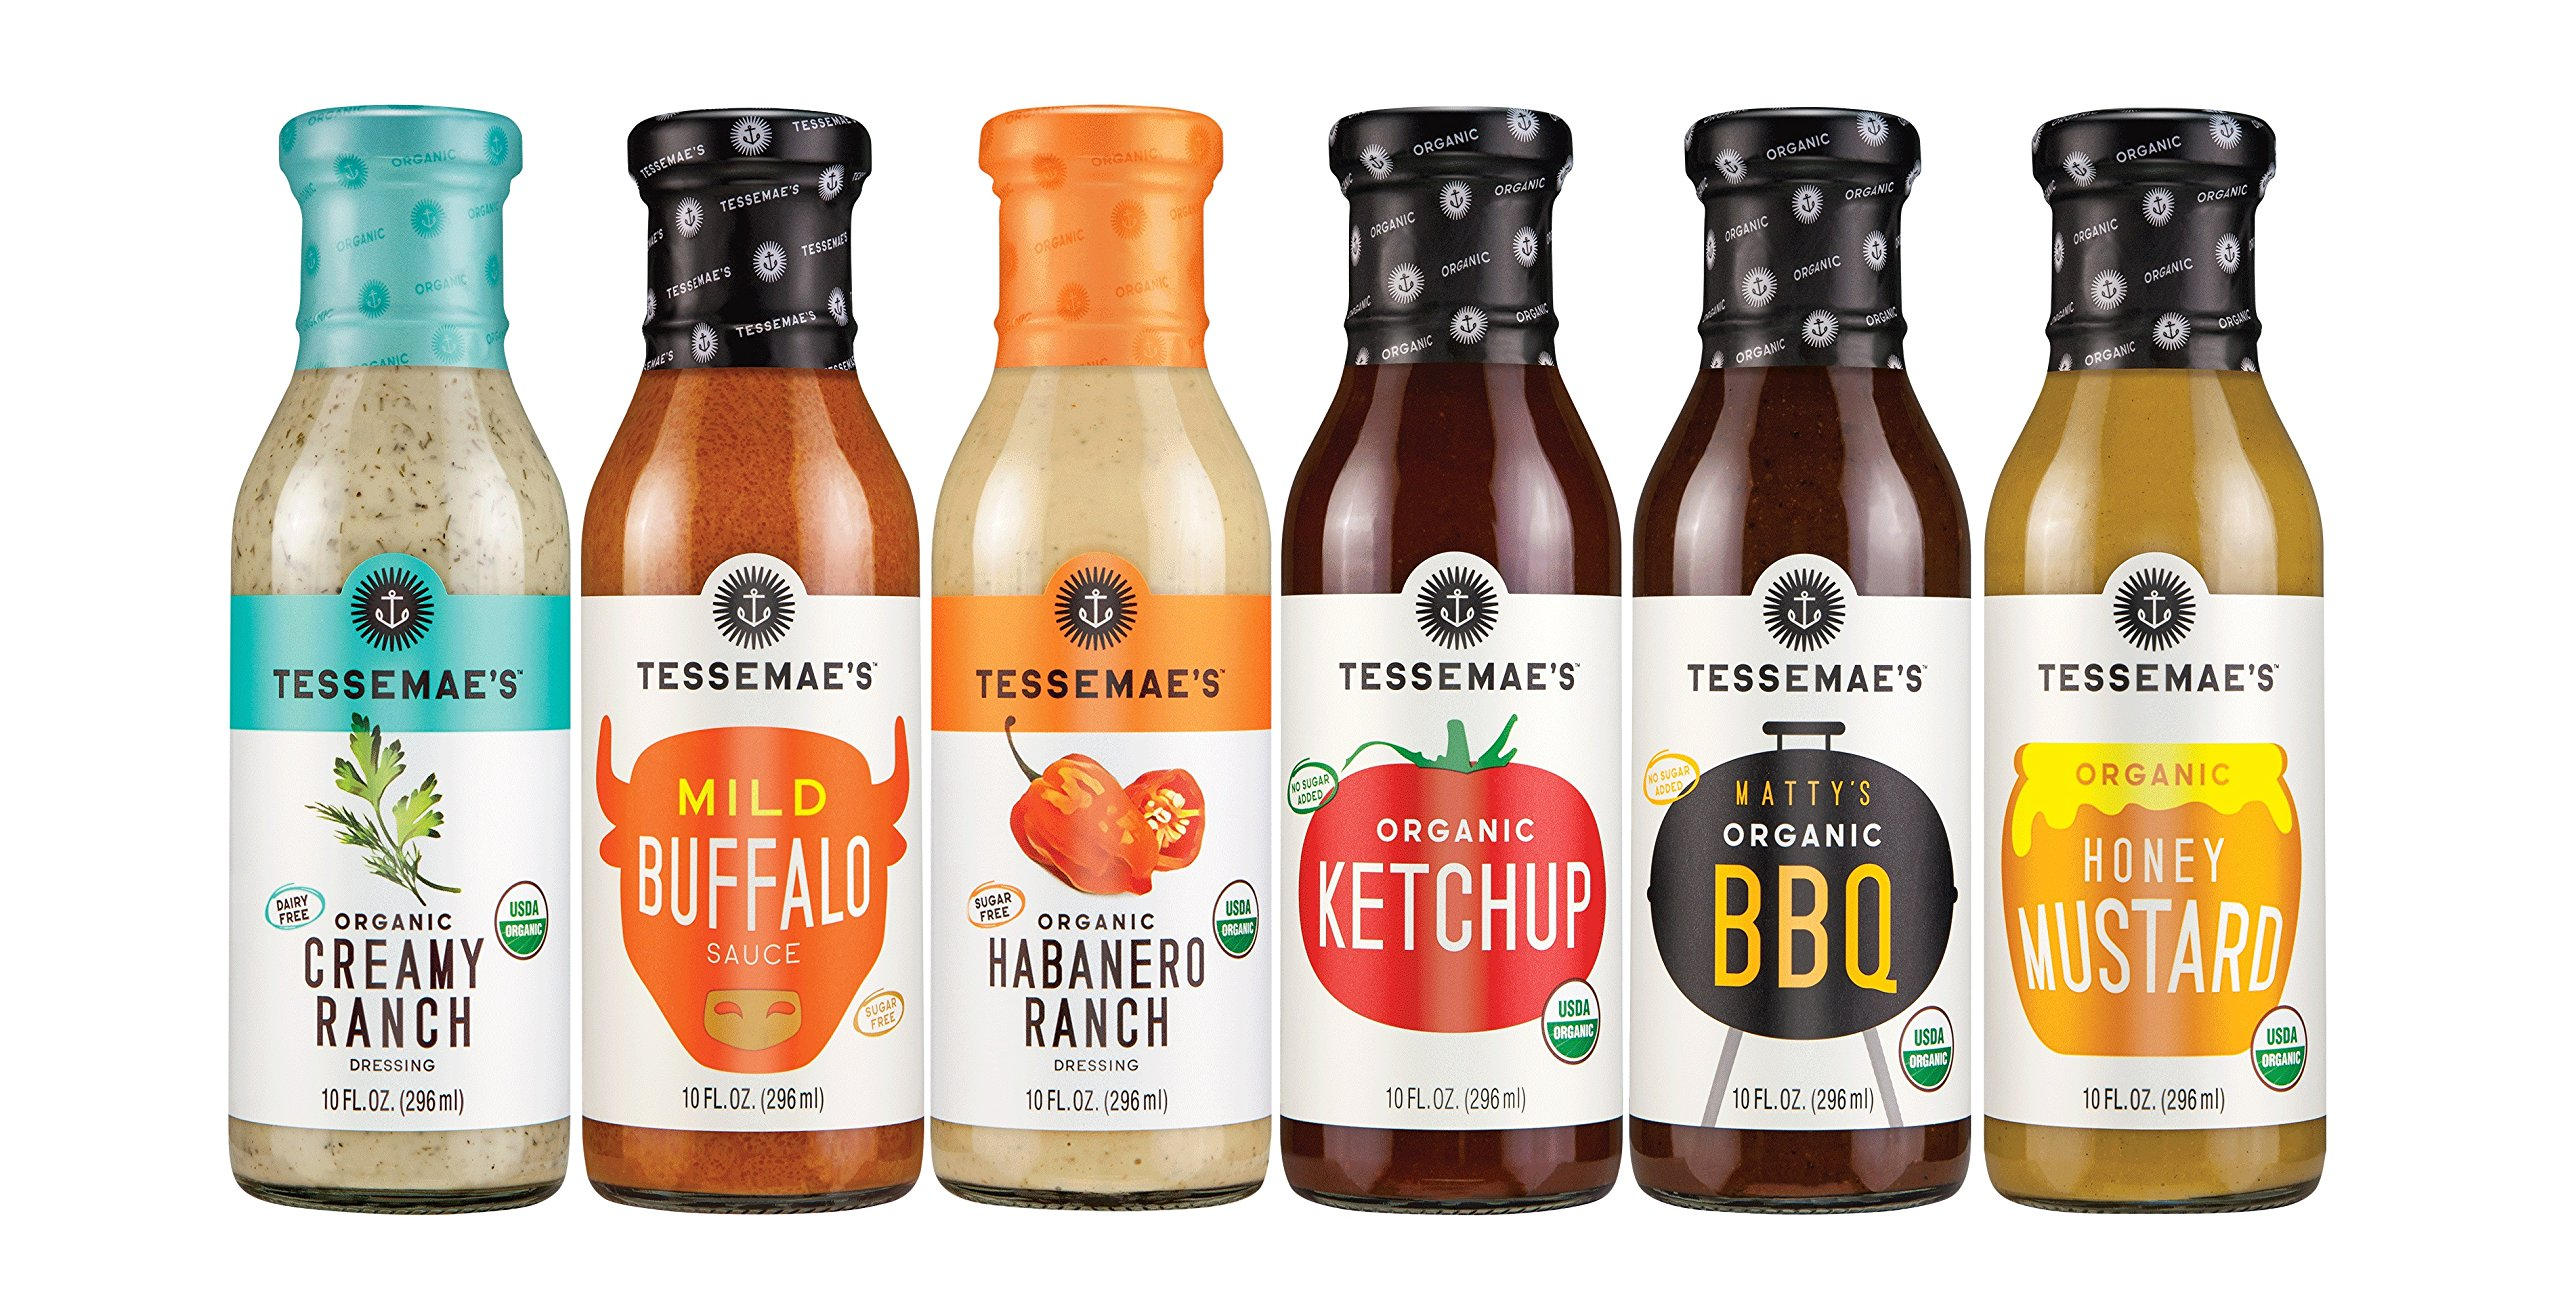 Tessemae's All Natural Summer Sauces Pack